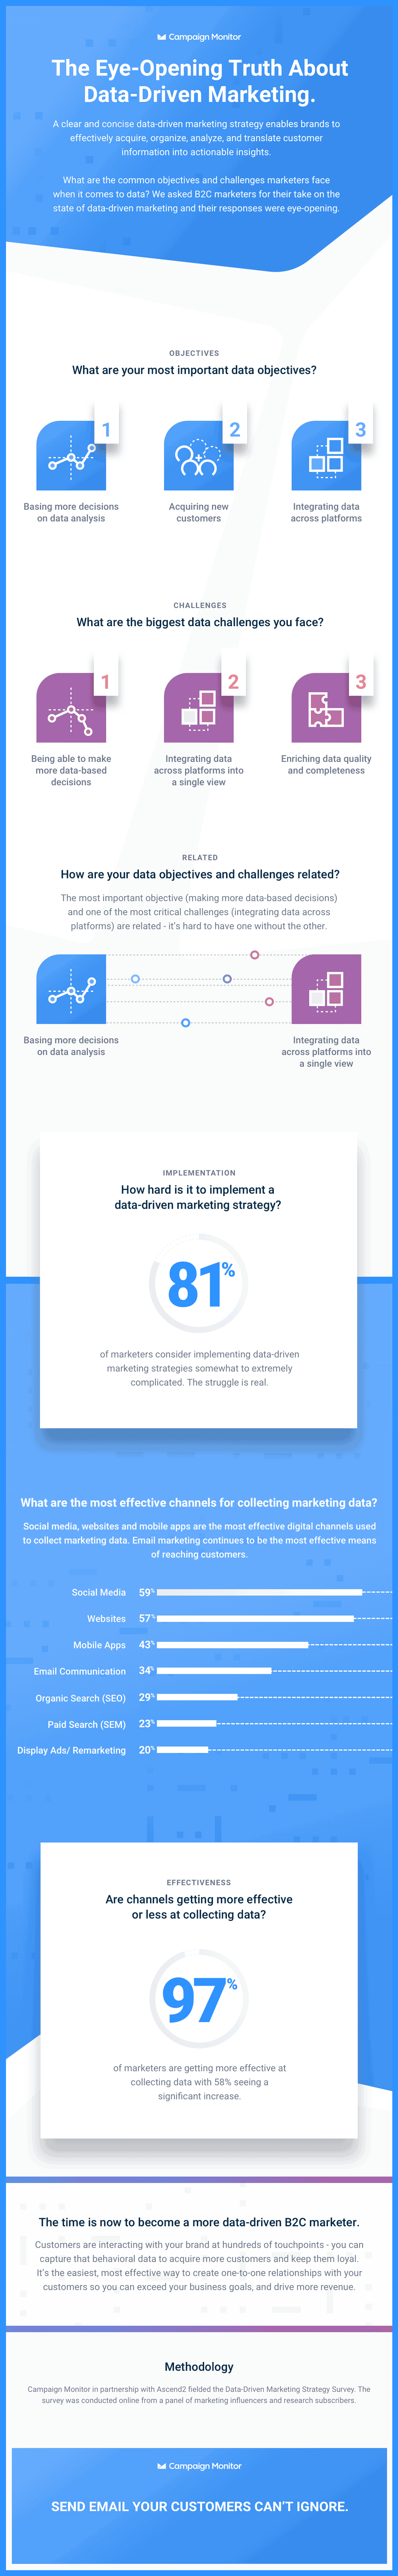 Data-Driven-Marketing-Strategy-infographic